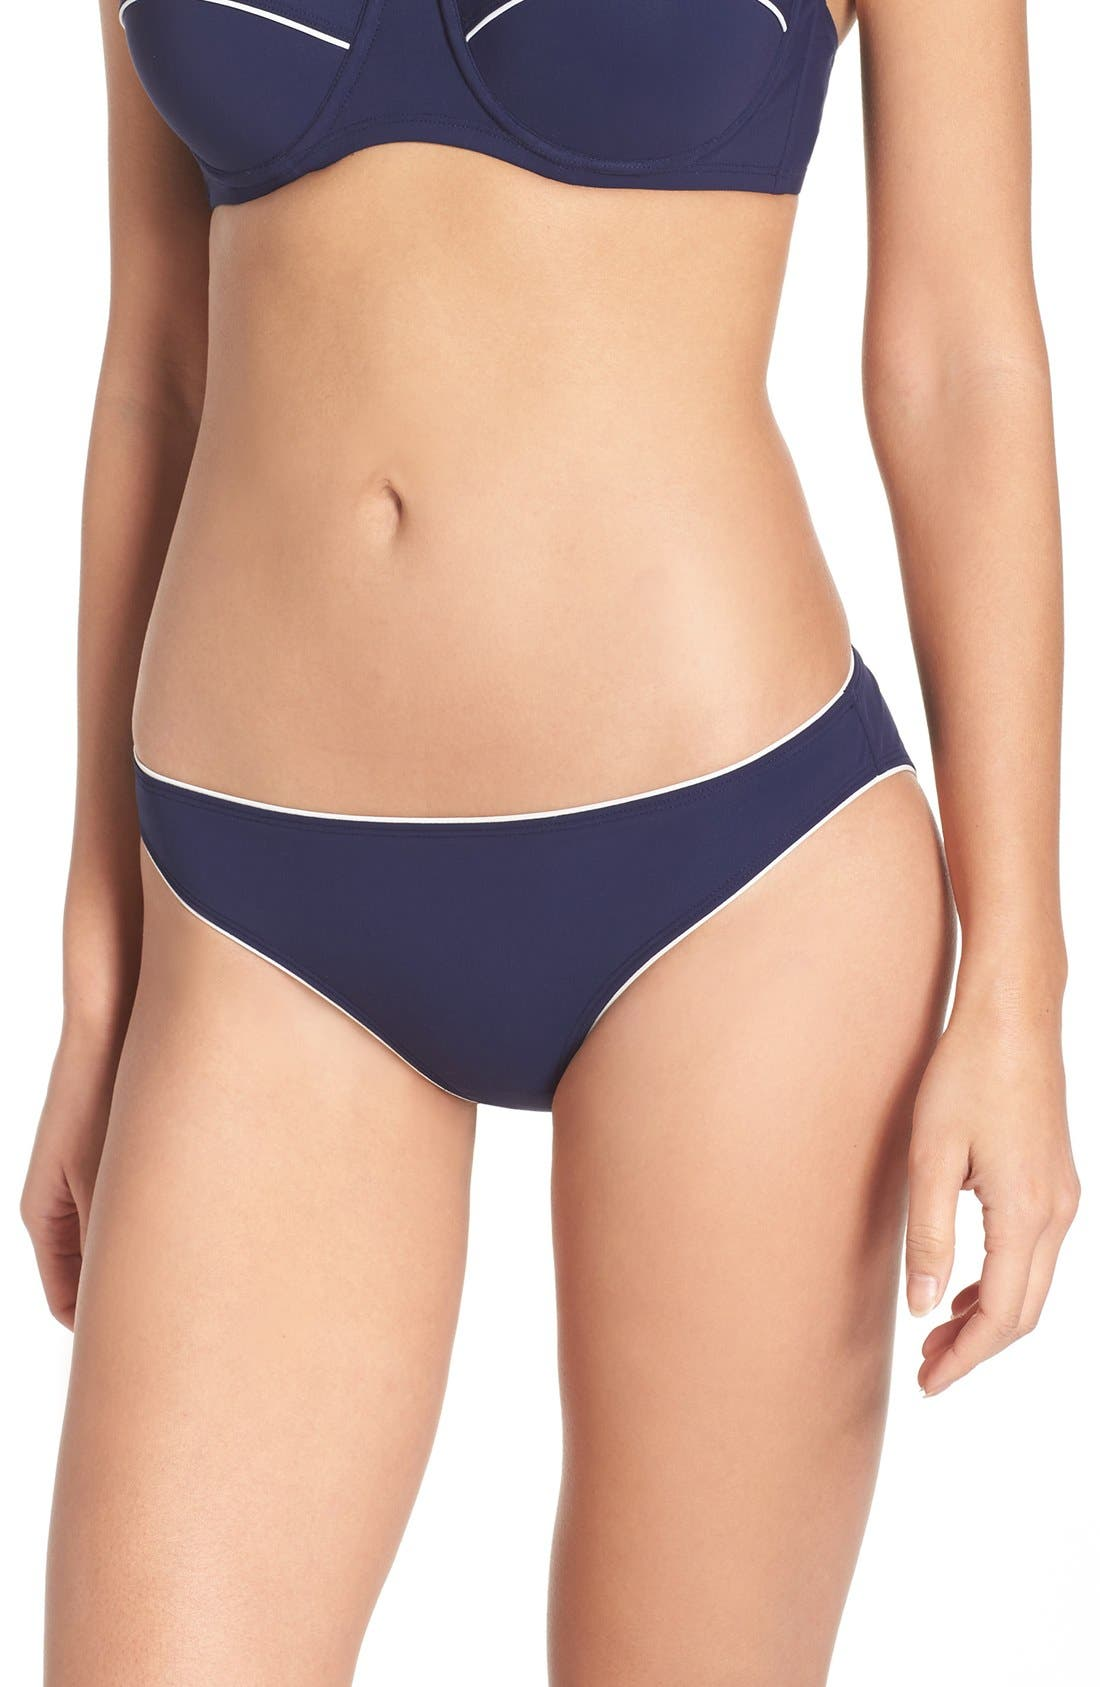 Alternate Image 1 Selected - Tory Burch Riviera Hipster Bikini Bottoms